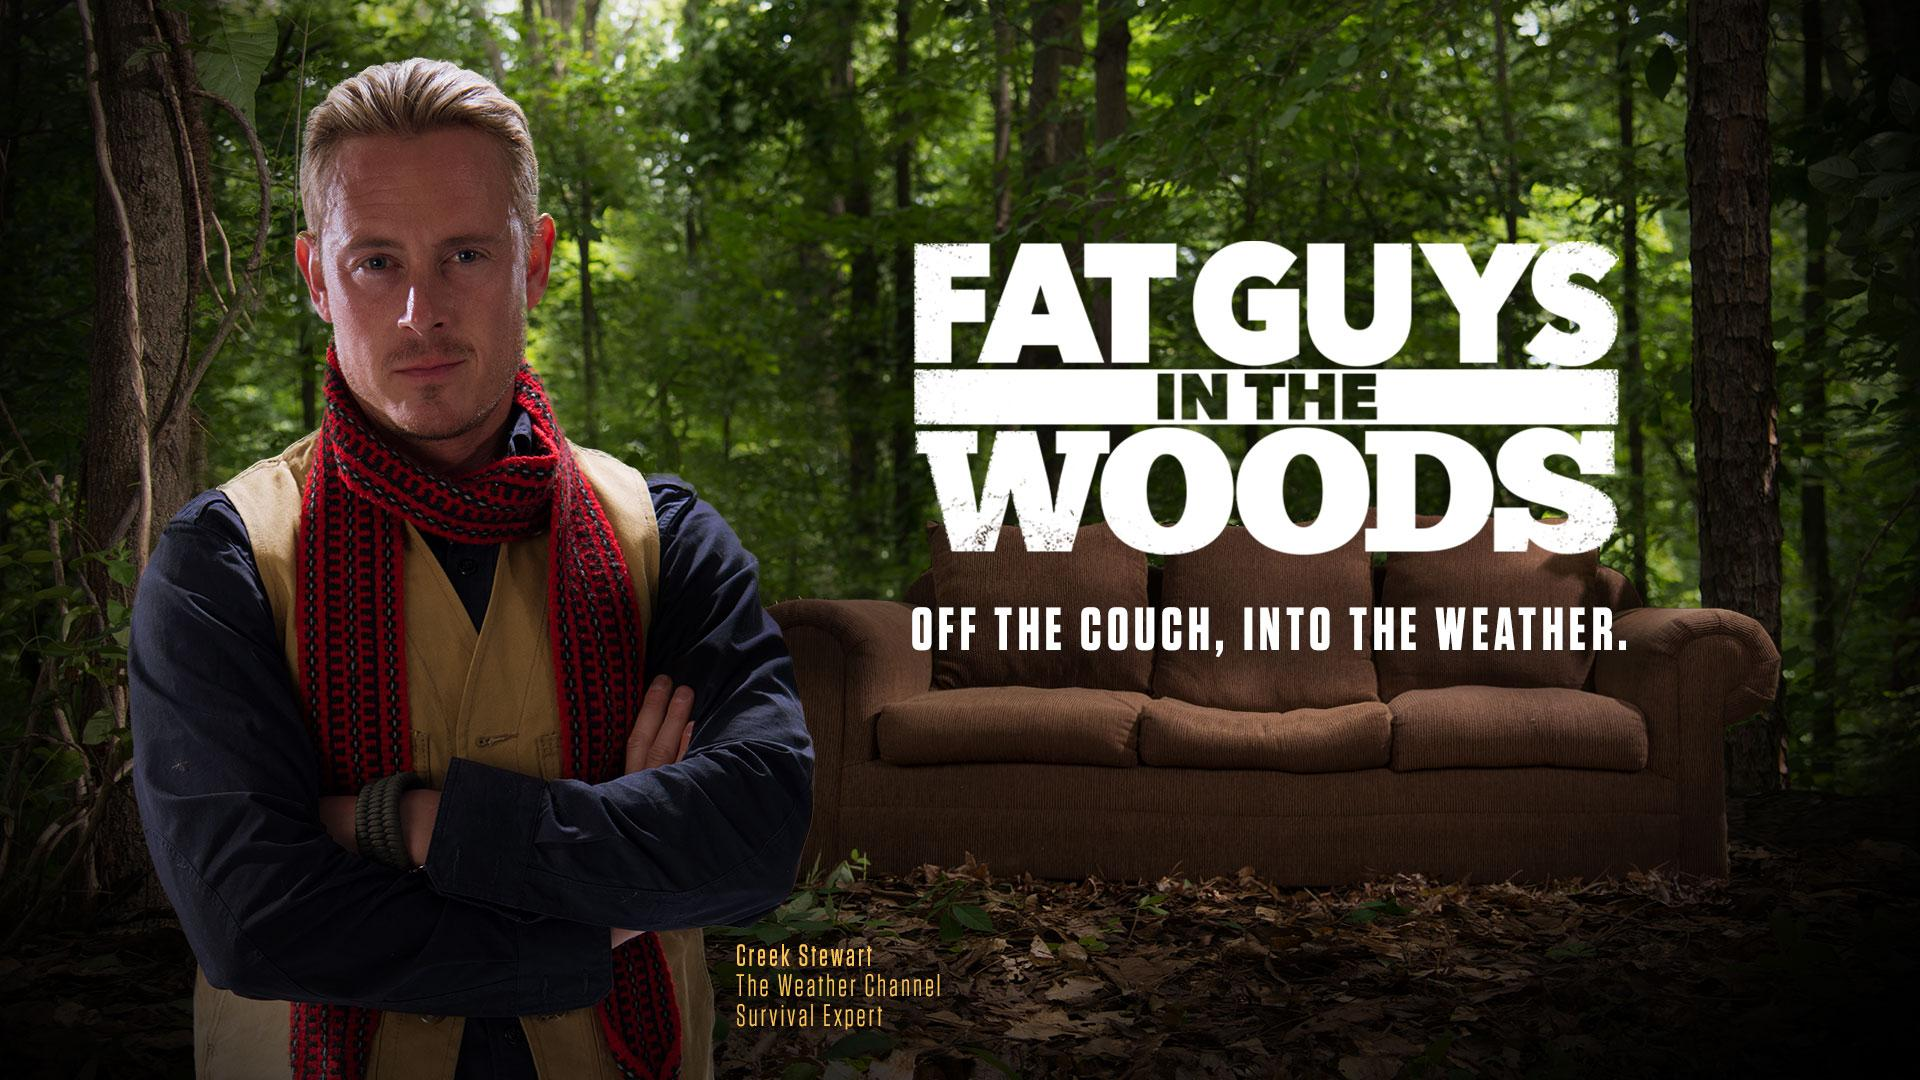 Fat man in the woods